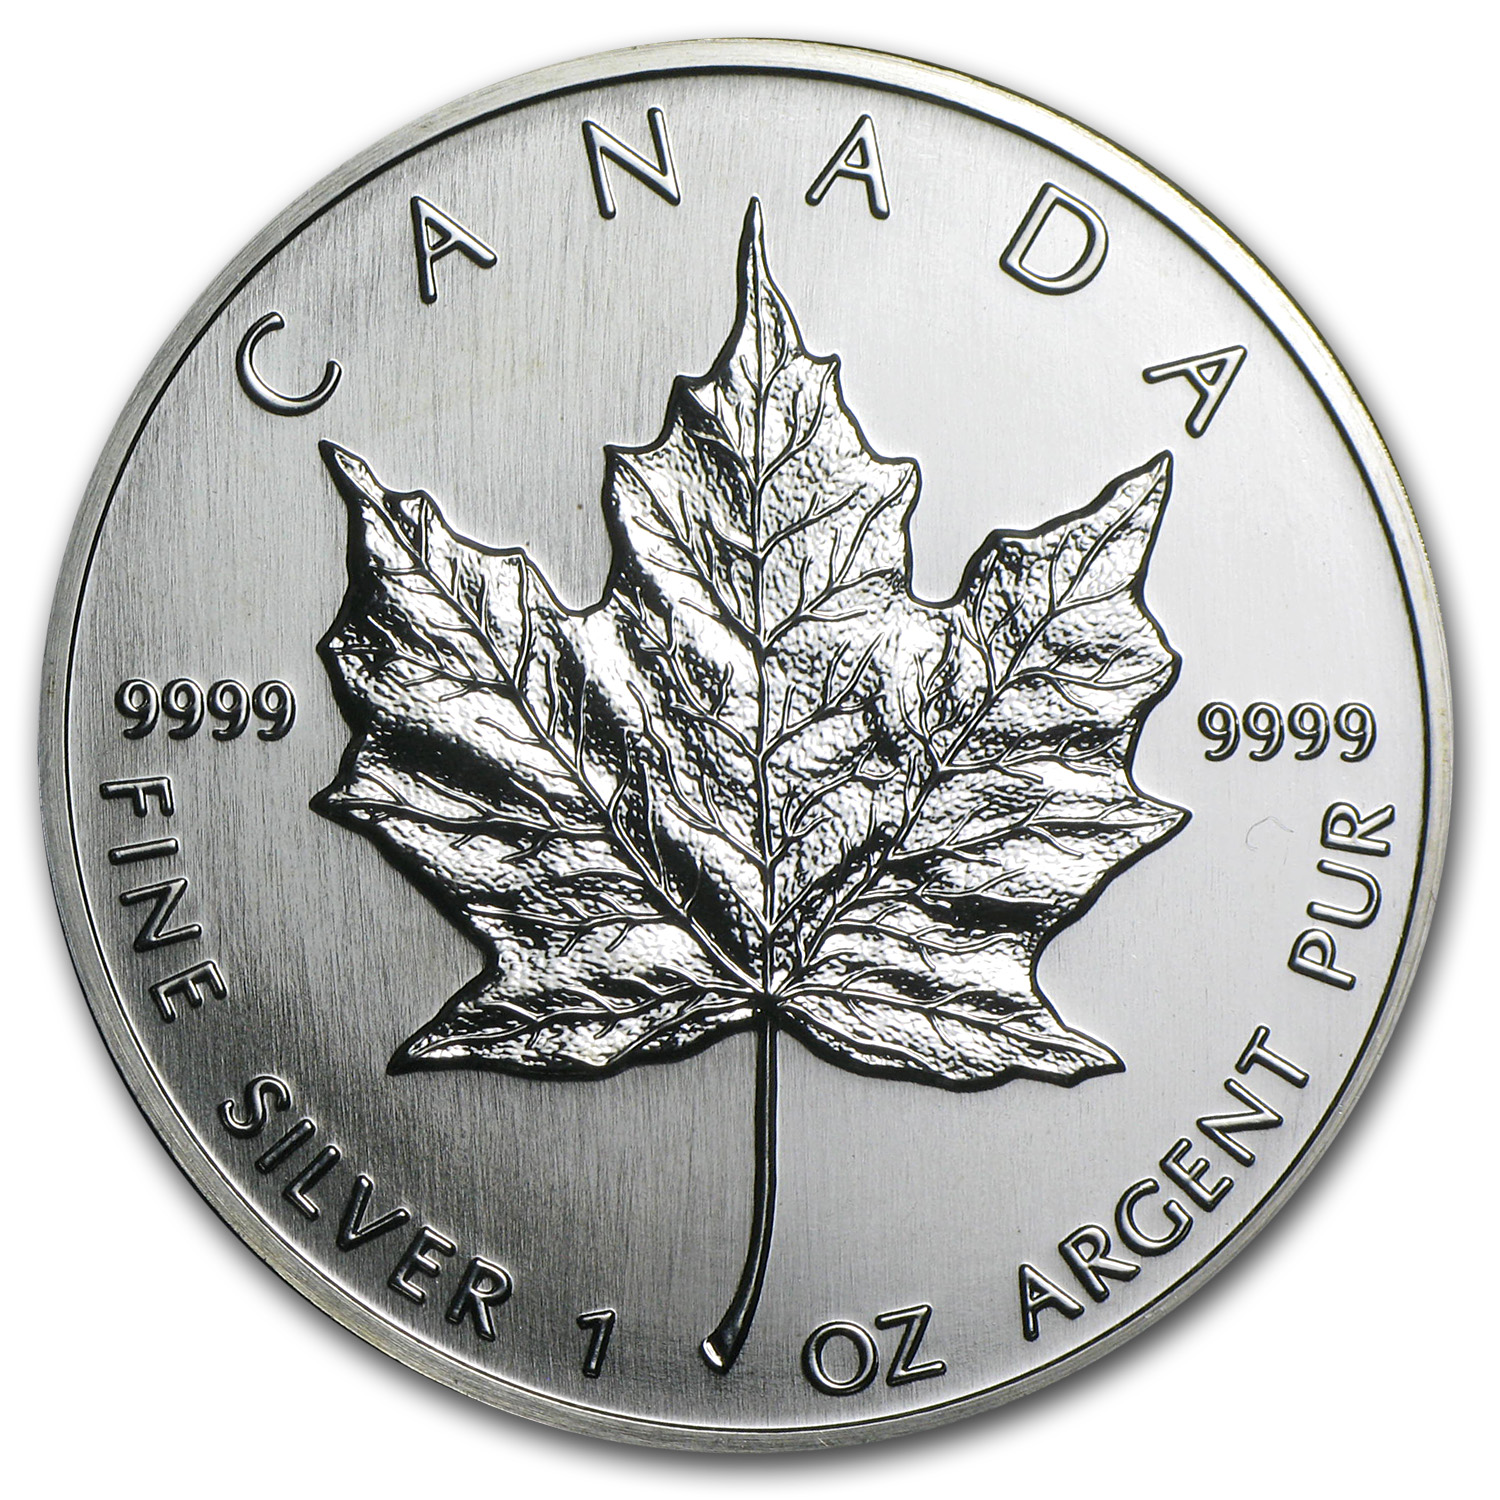 1990 1 oz Silver Canadian Maple Leaf (Brilliant Uncirculated)